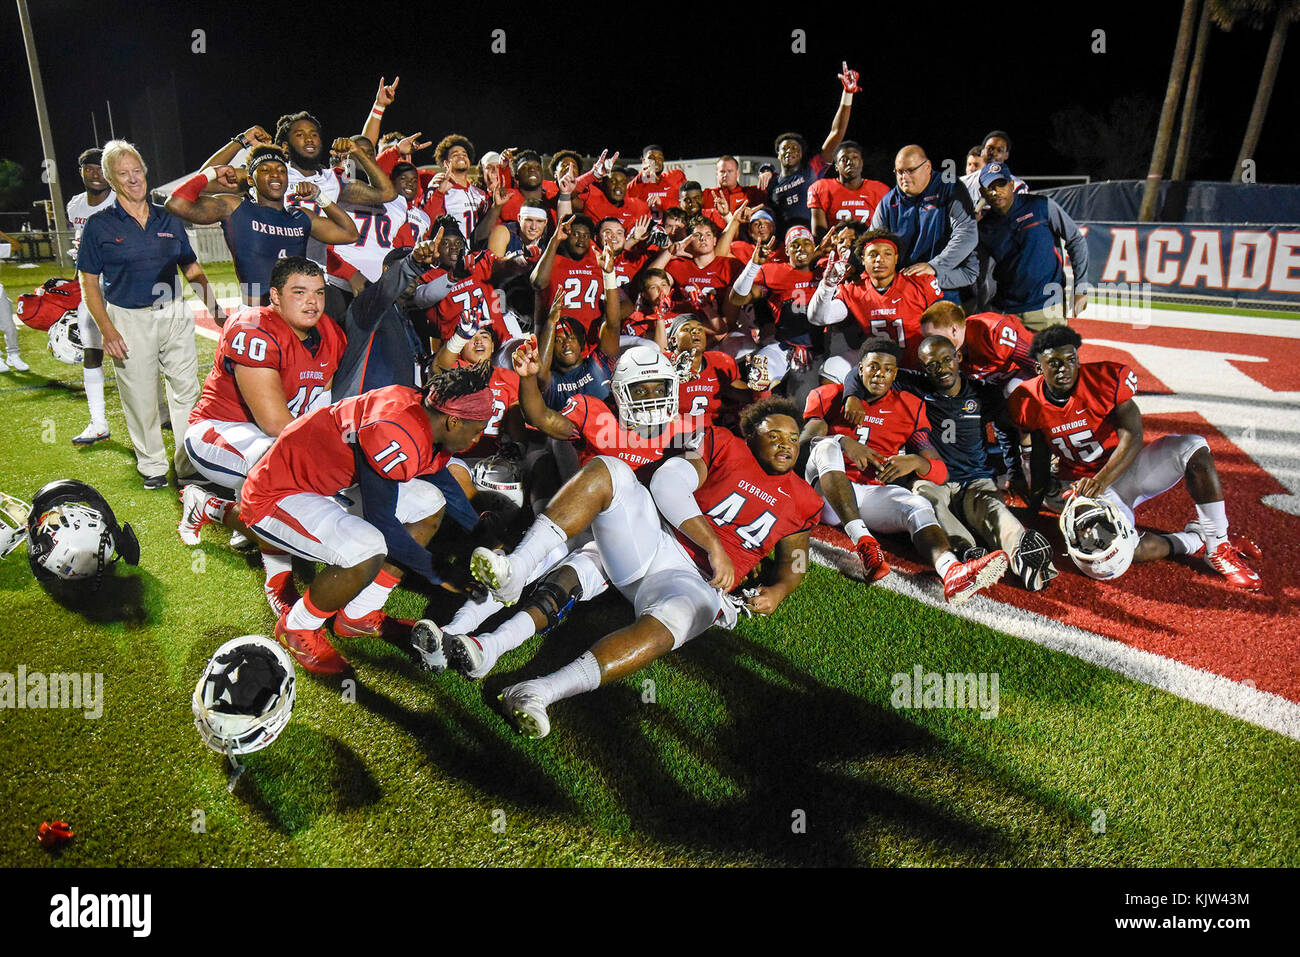 Celebrate At The End Of The Game Stock Photos & Celebrate At